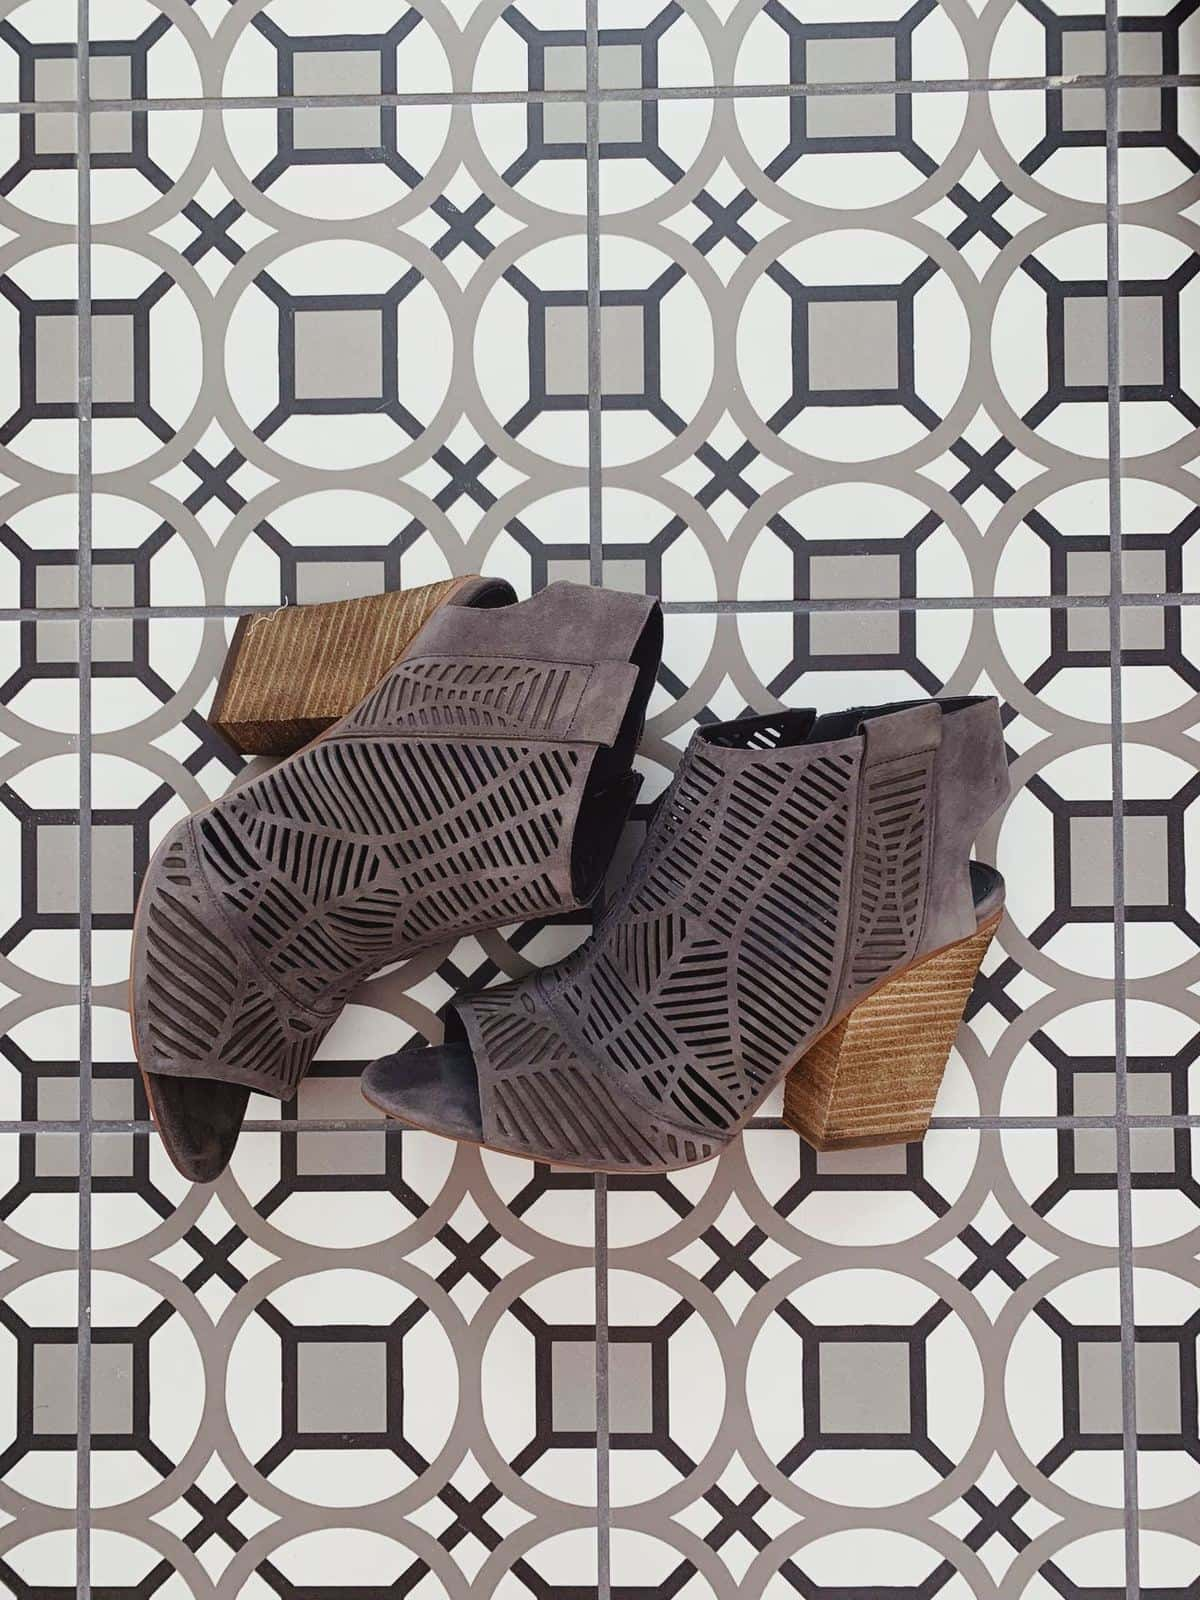 vince camuto laser cut booties 2019